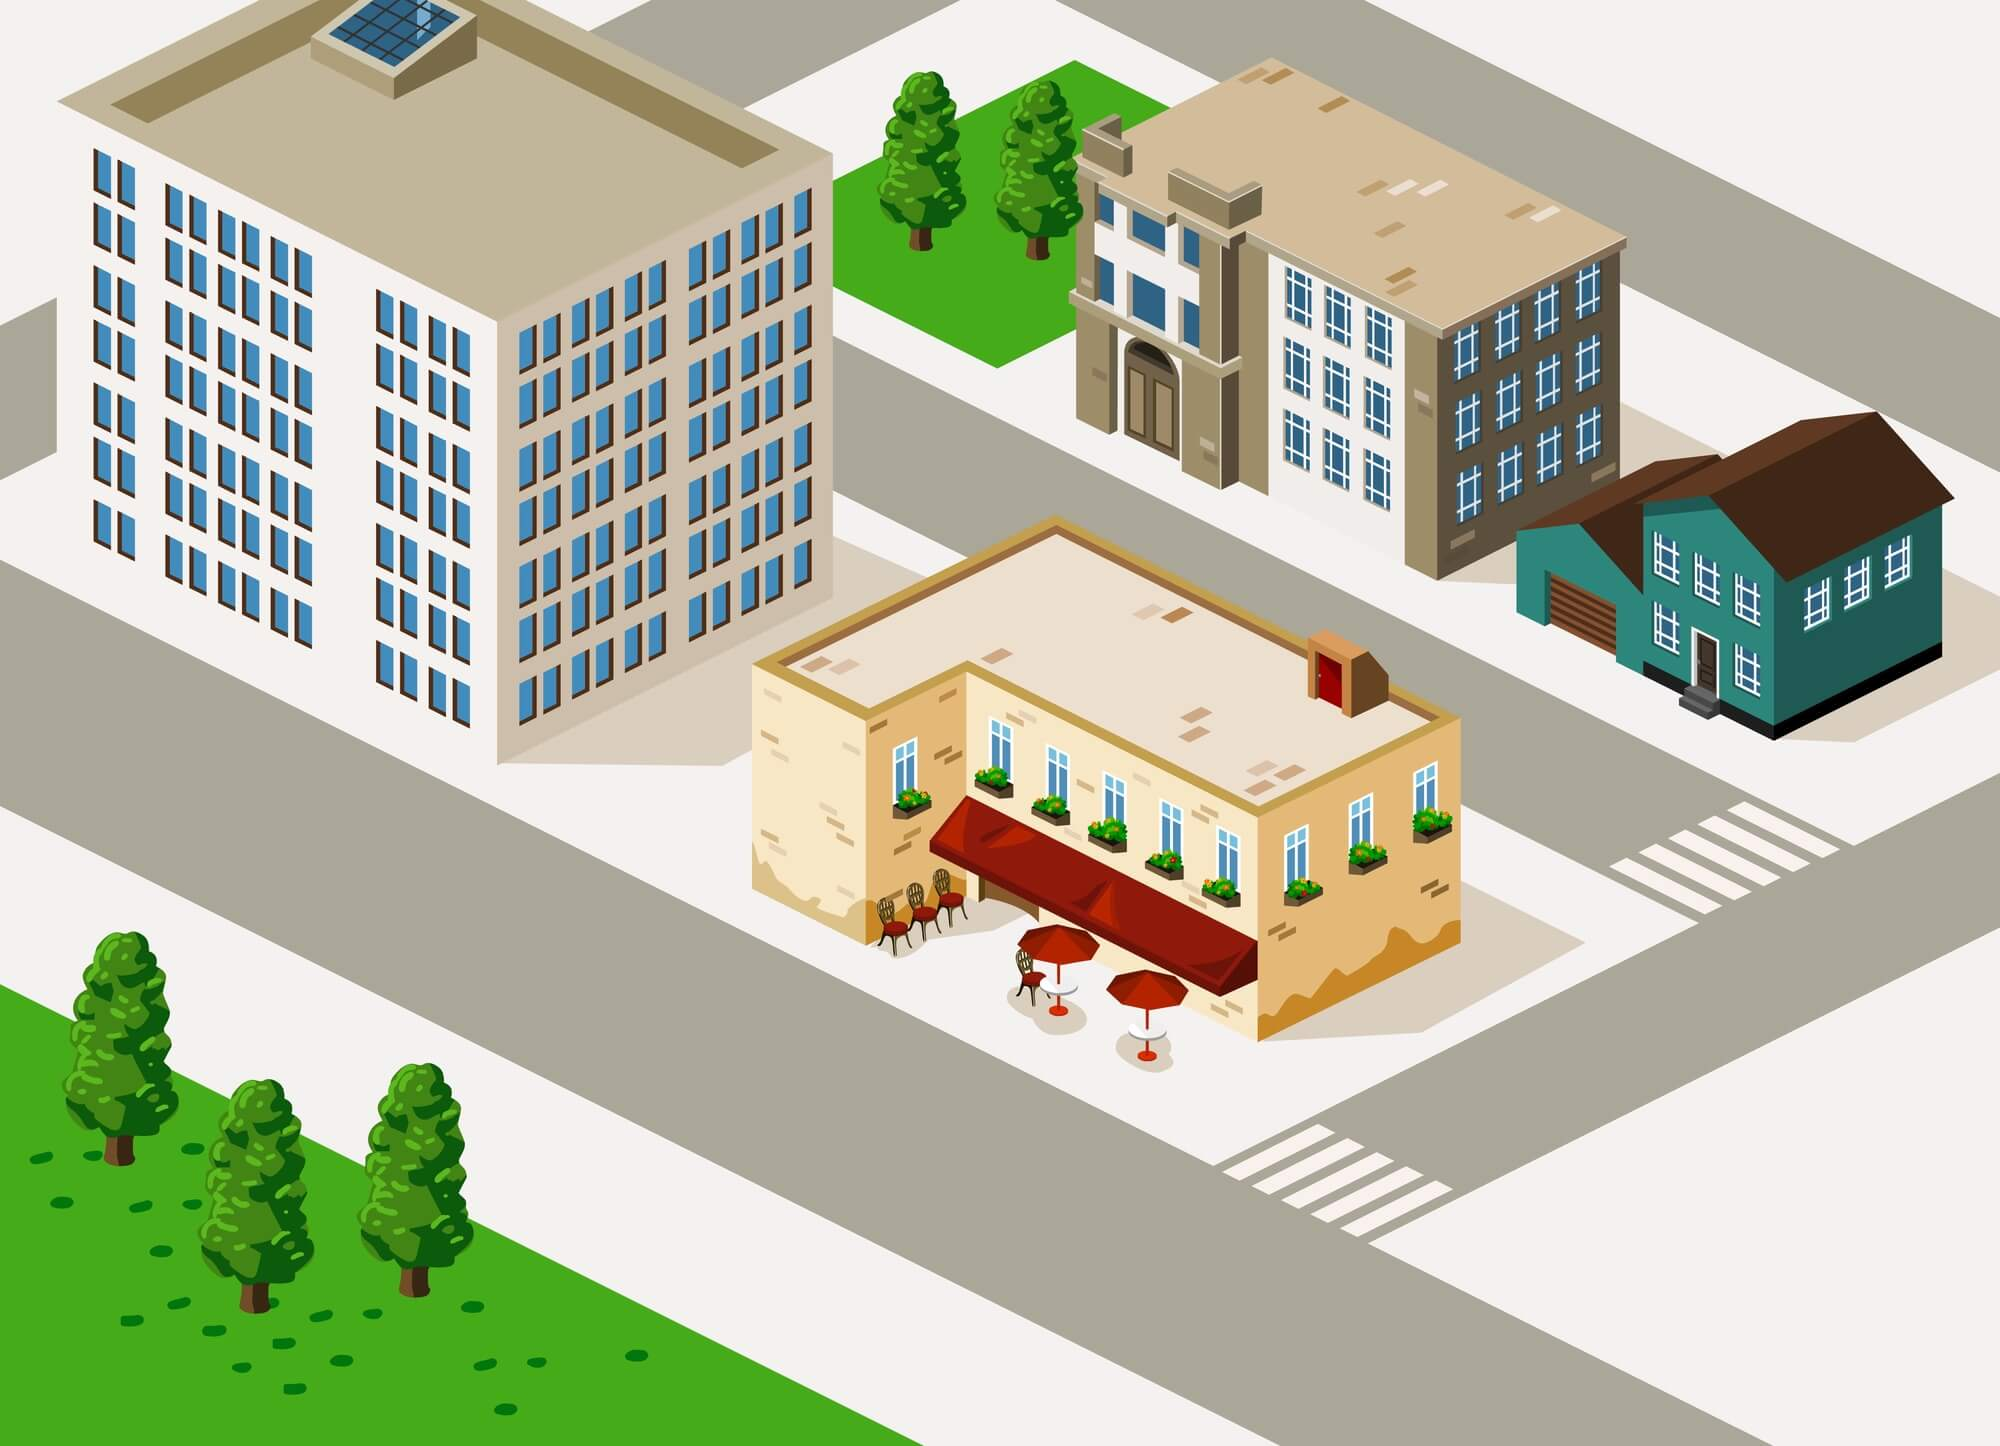 bird's-eye view of illustrated buildings on street corner